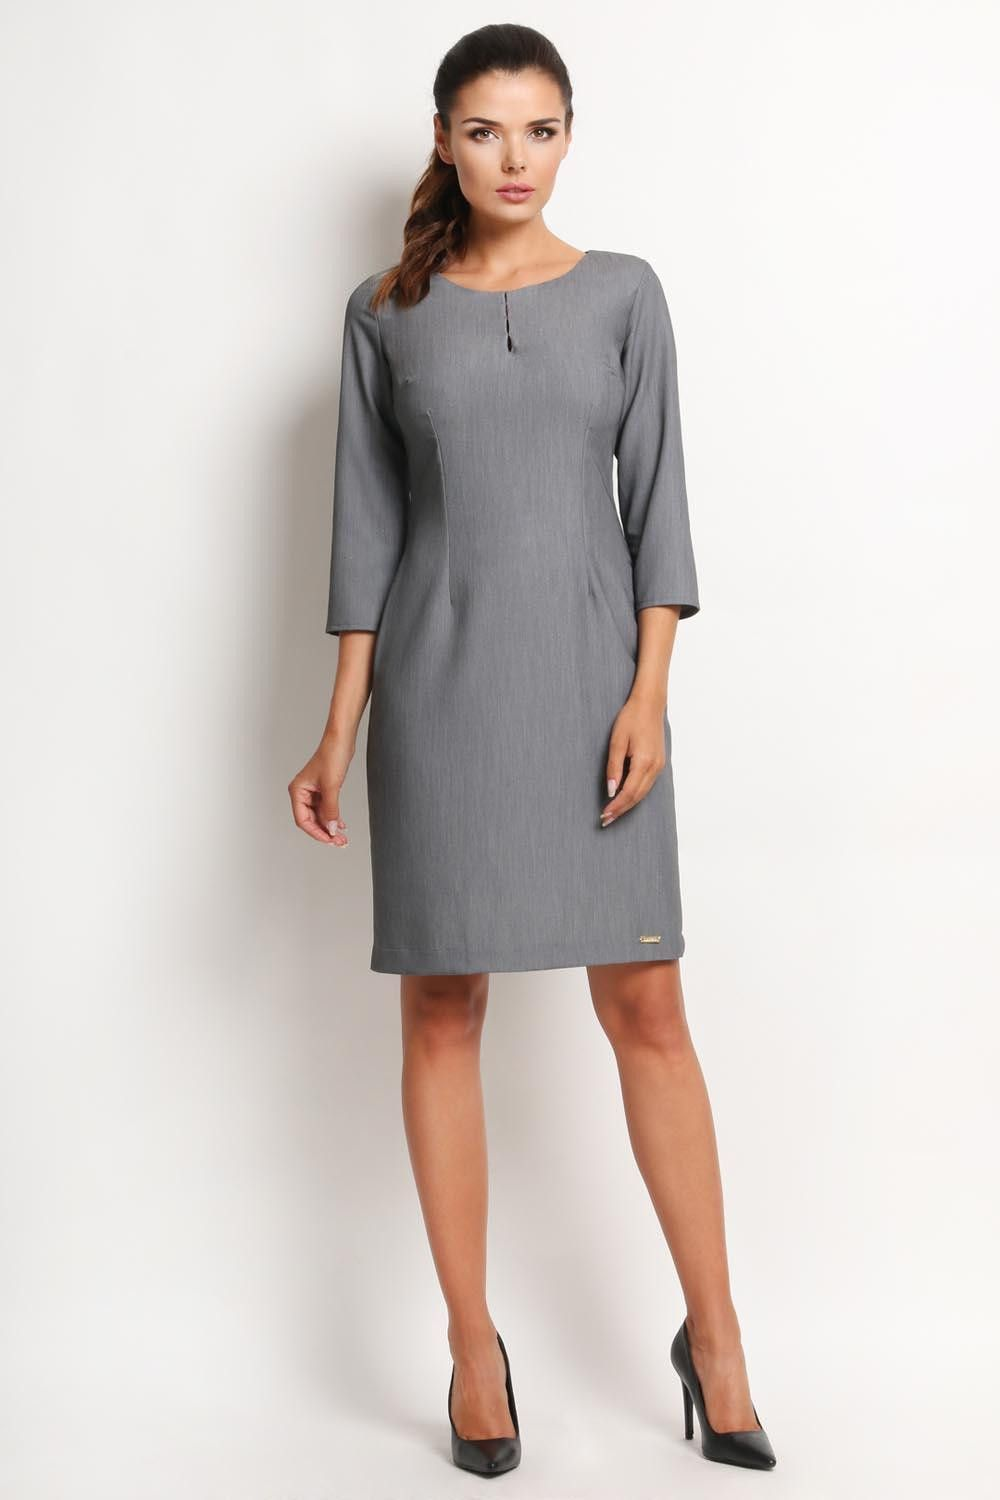 93a5f76265713 Grey Awama Dresses   Products   Midi dress with sleeves, Dresses ...